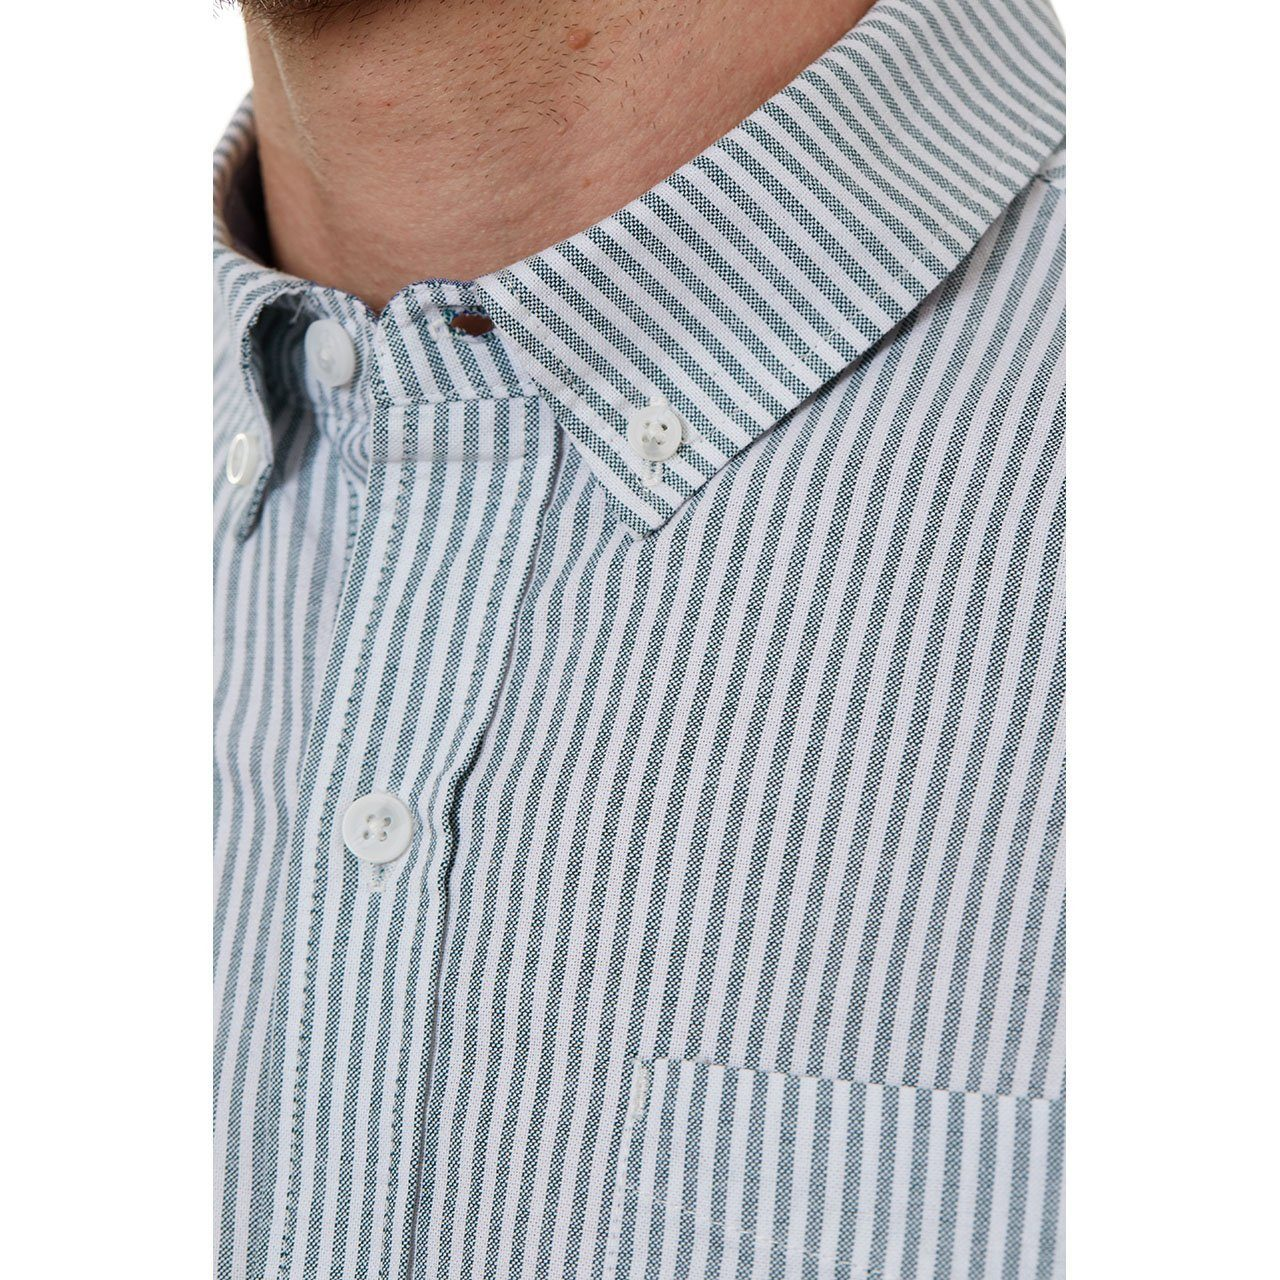 Short Sleeve Shirt, Shirt - Larry Green Vertical Striped Shirt